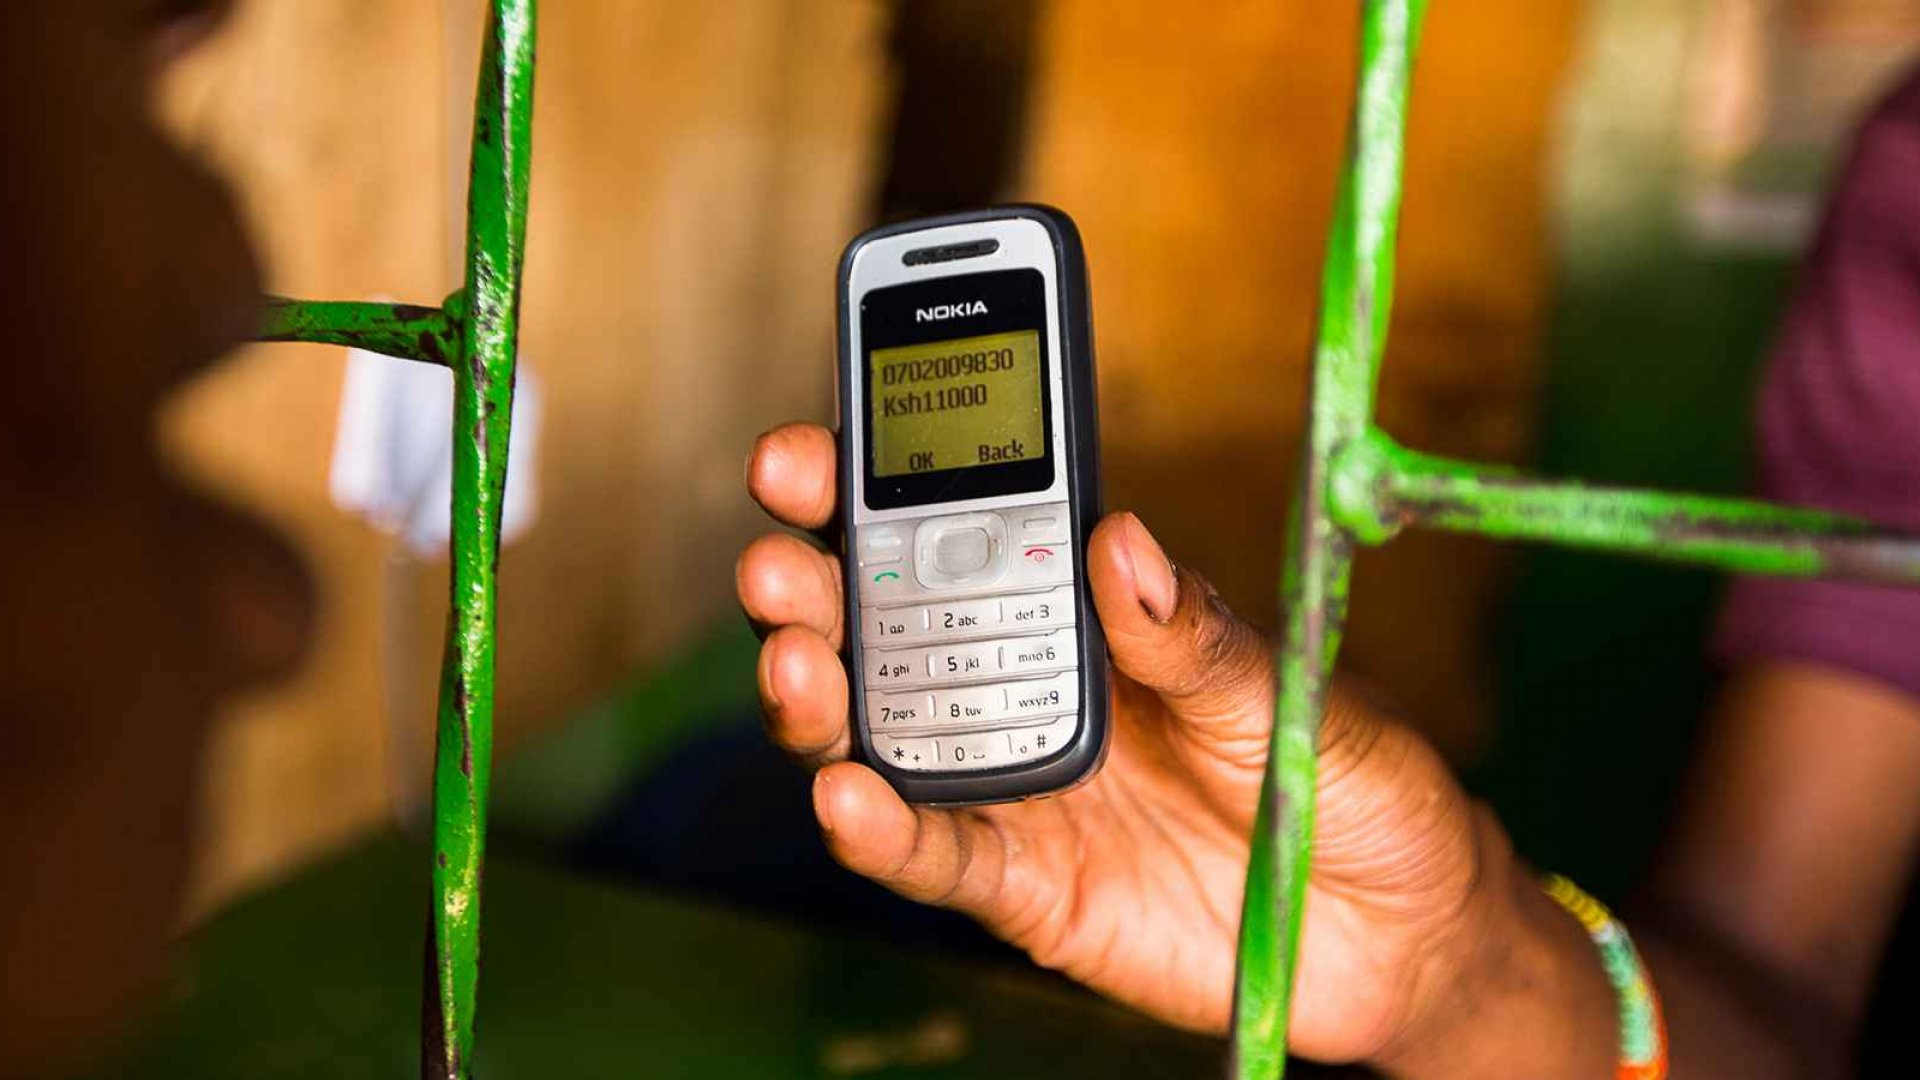 An employee displays a Nokia 1200 mobile phone to a resident as they transfer money using the M-Pesa banking service in Nairobi, Kenya, on Sunday, April 14, 2013.